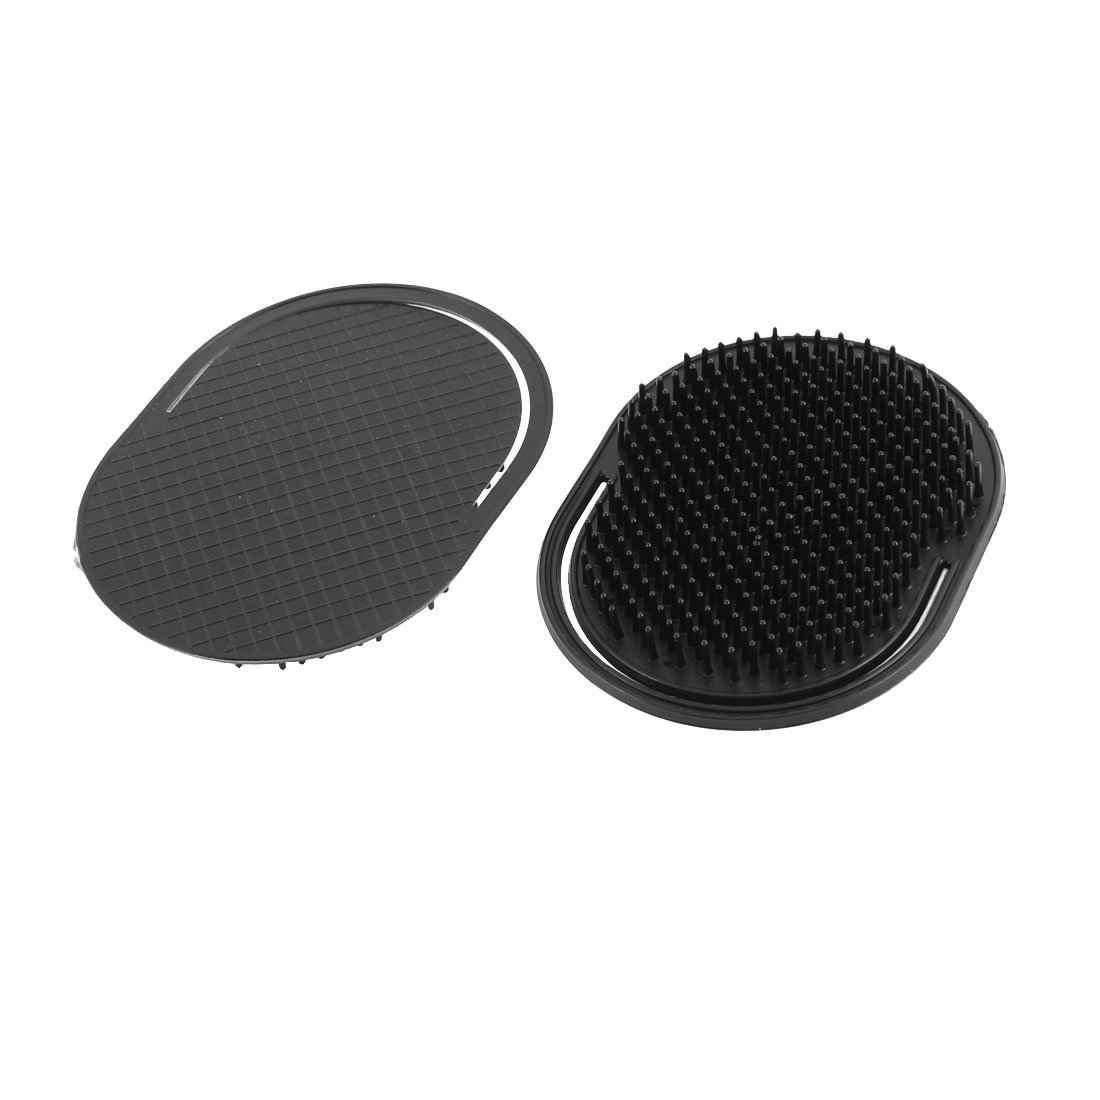 uxcell Plastic Oval Shaped Hair Palm Comb Scalp Massage Brush 2Pcs Black a15110600ux0319